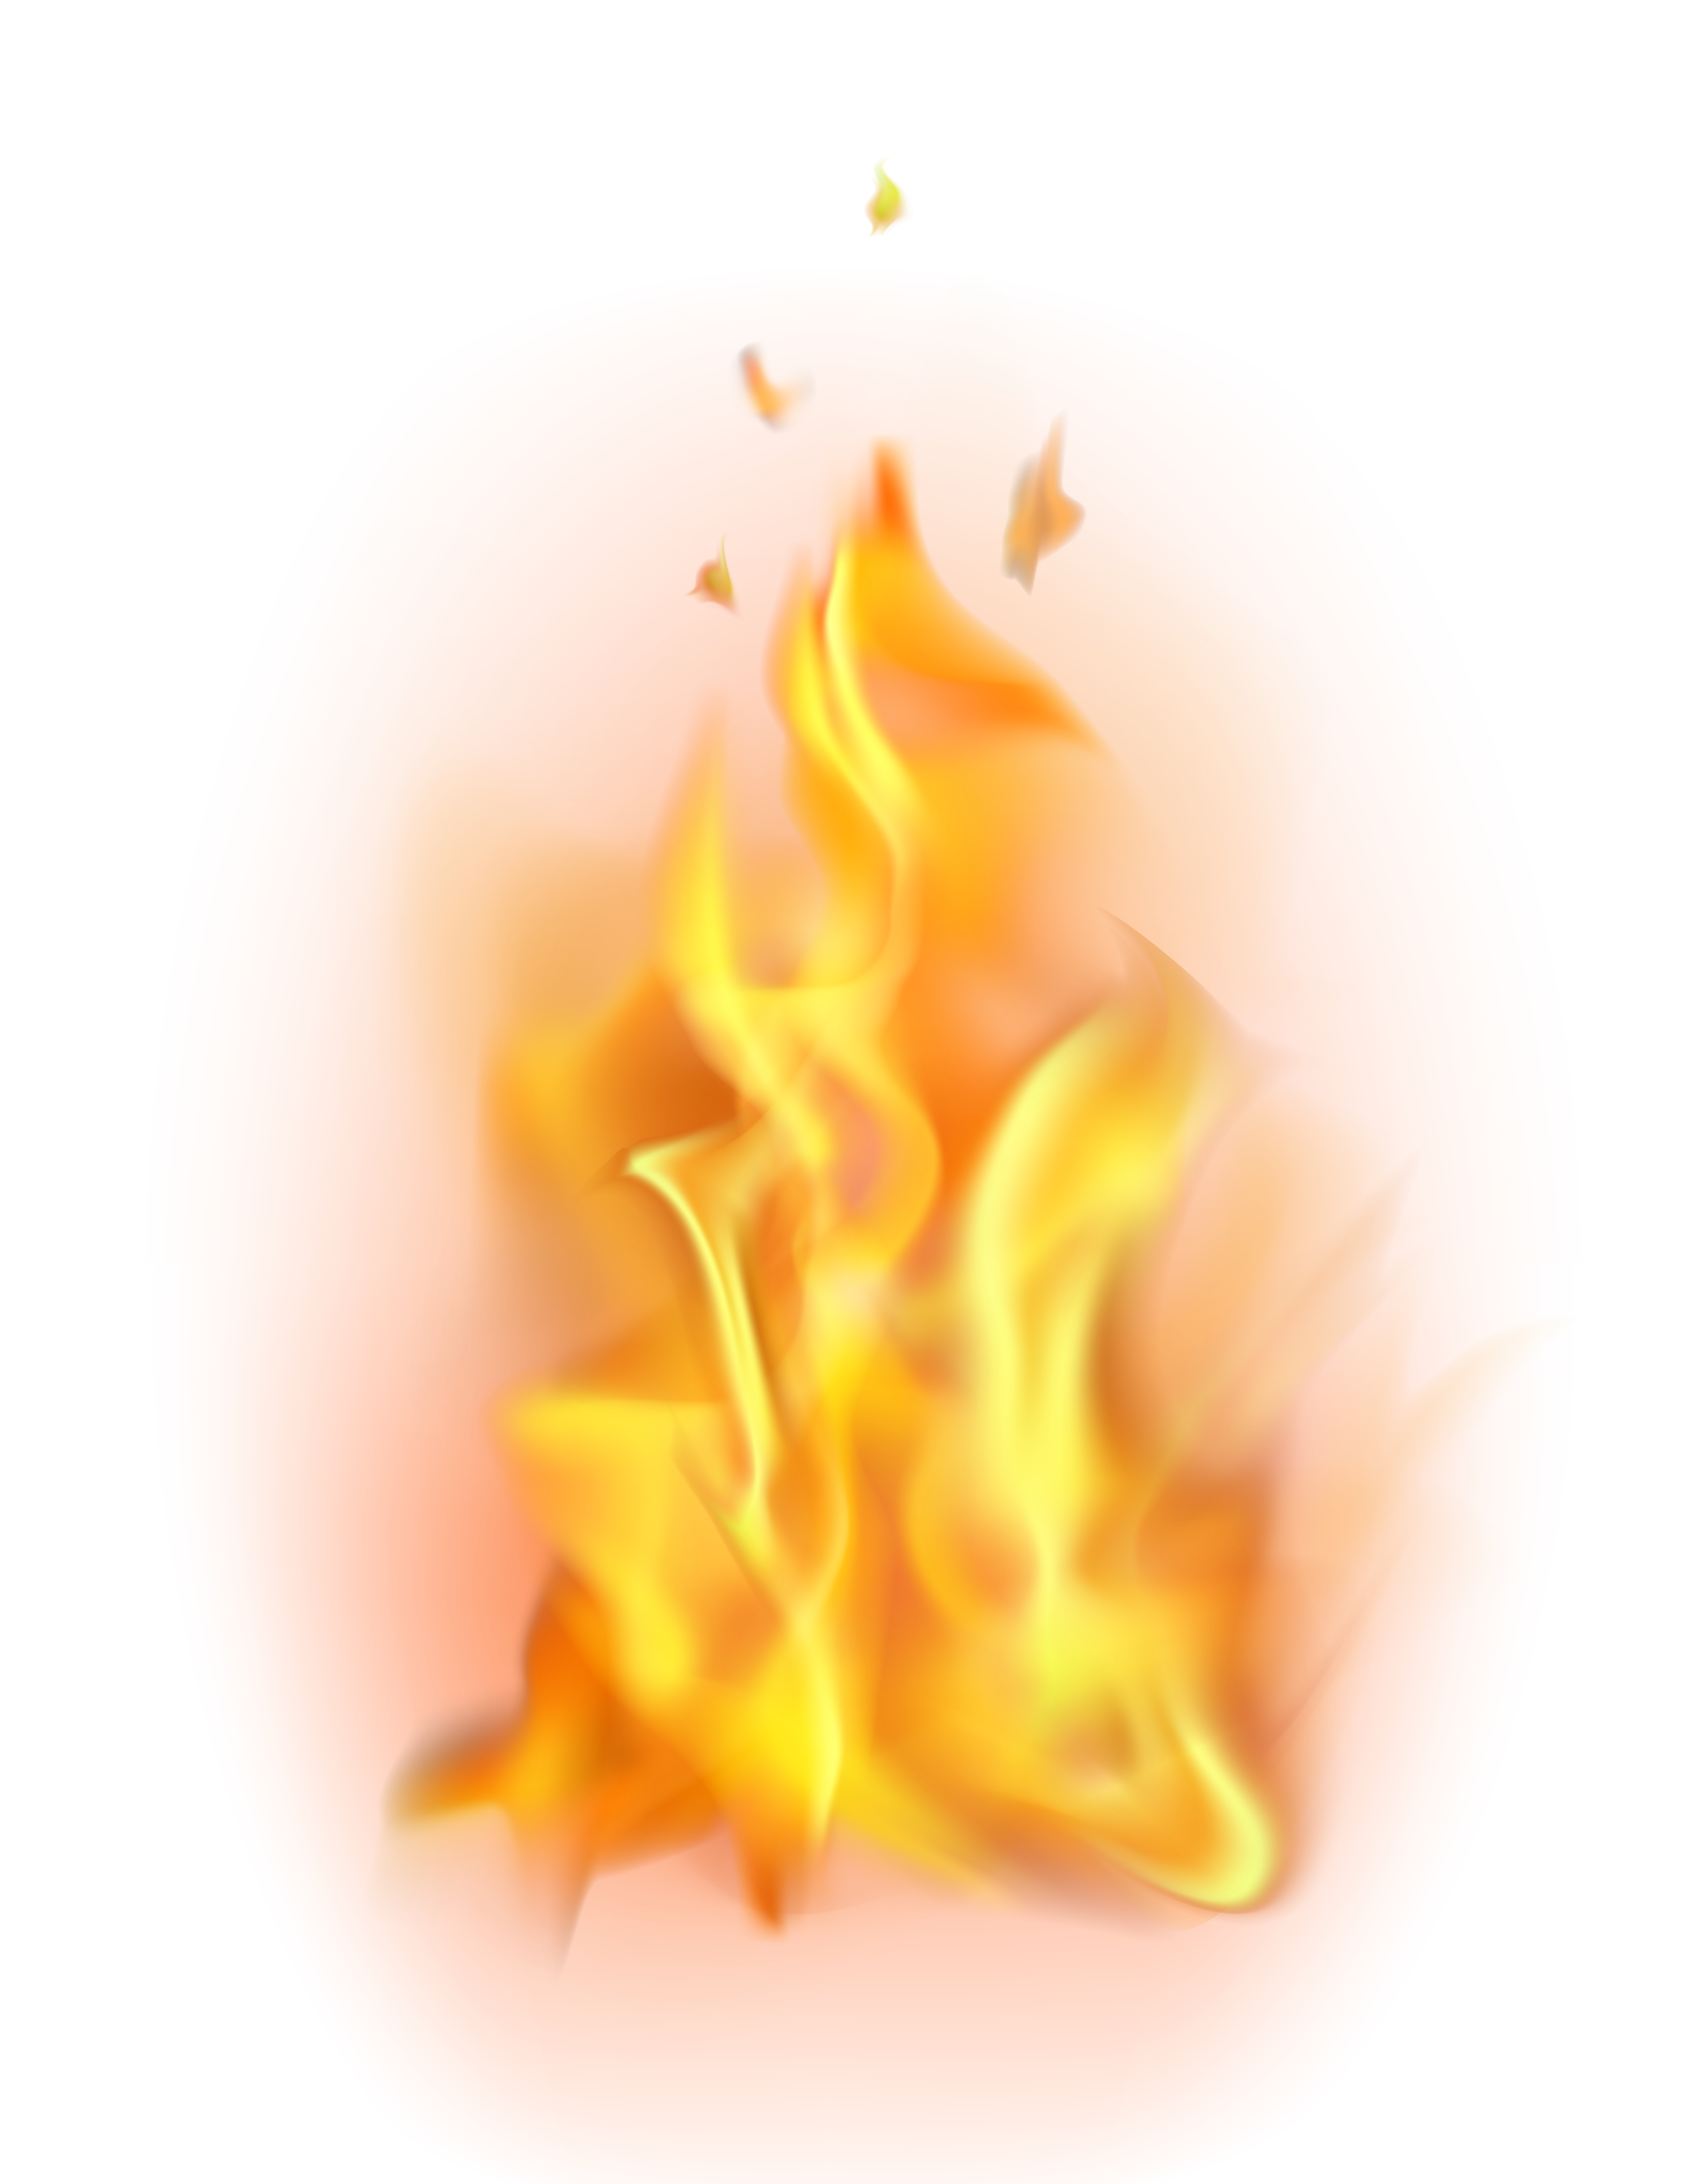 Flame heart clipart clip royalty free library Fire Flame Transparent PNG Clip Art | Gallery Yopriceville - High ... clip royalty free library